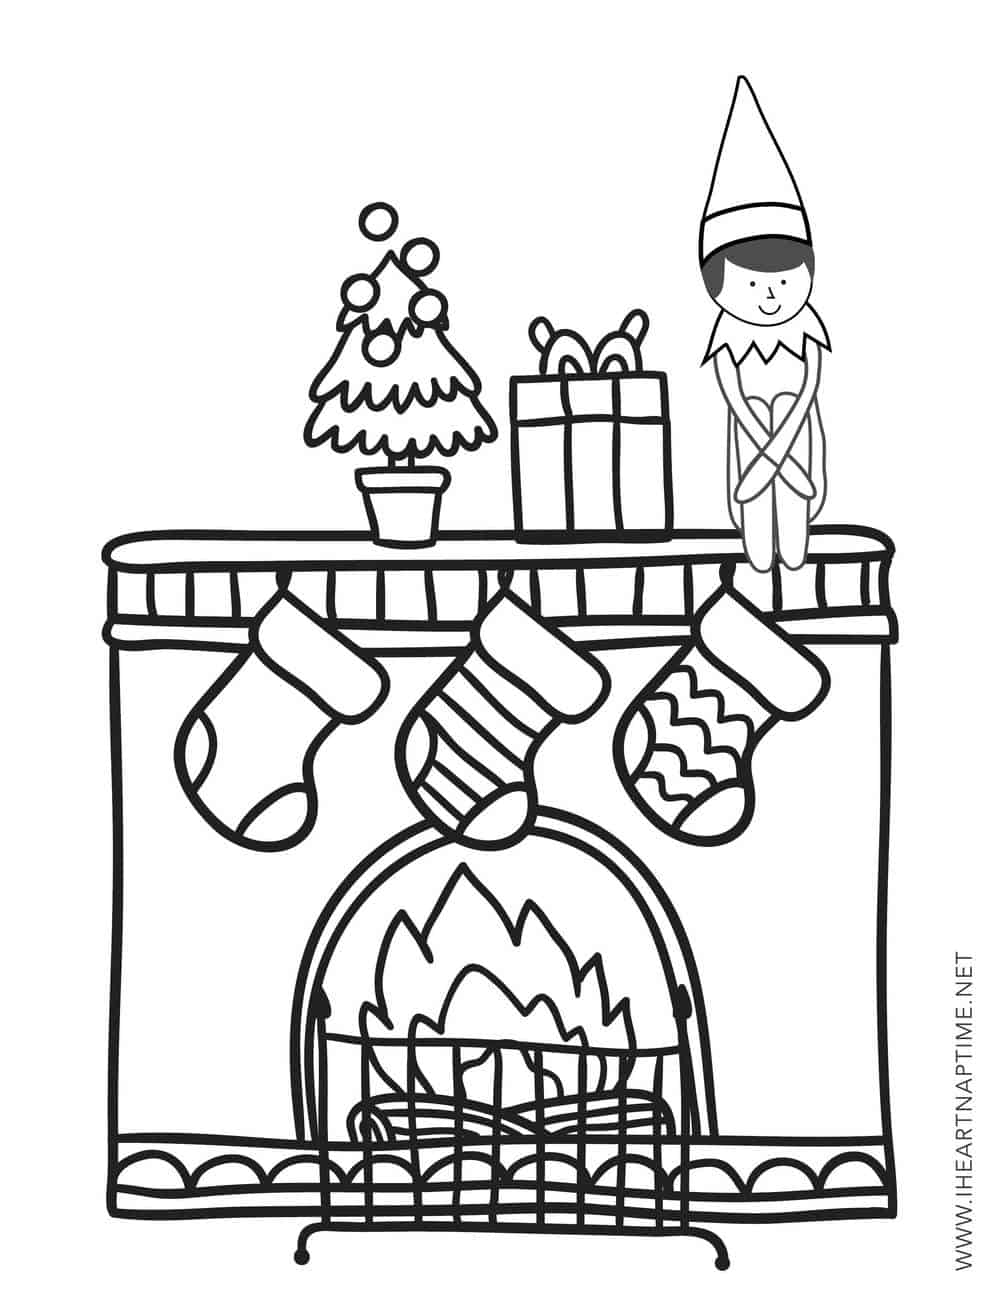 elf on the shelf coloring page 3 elf on the shelf coloring pages freebie finding mom on page coloring the shelf elf